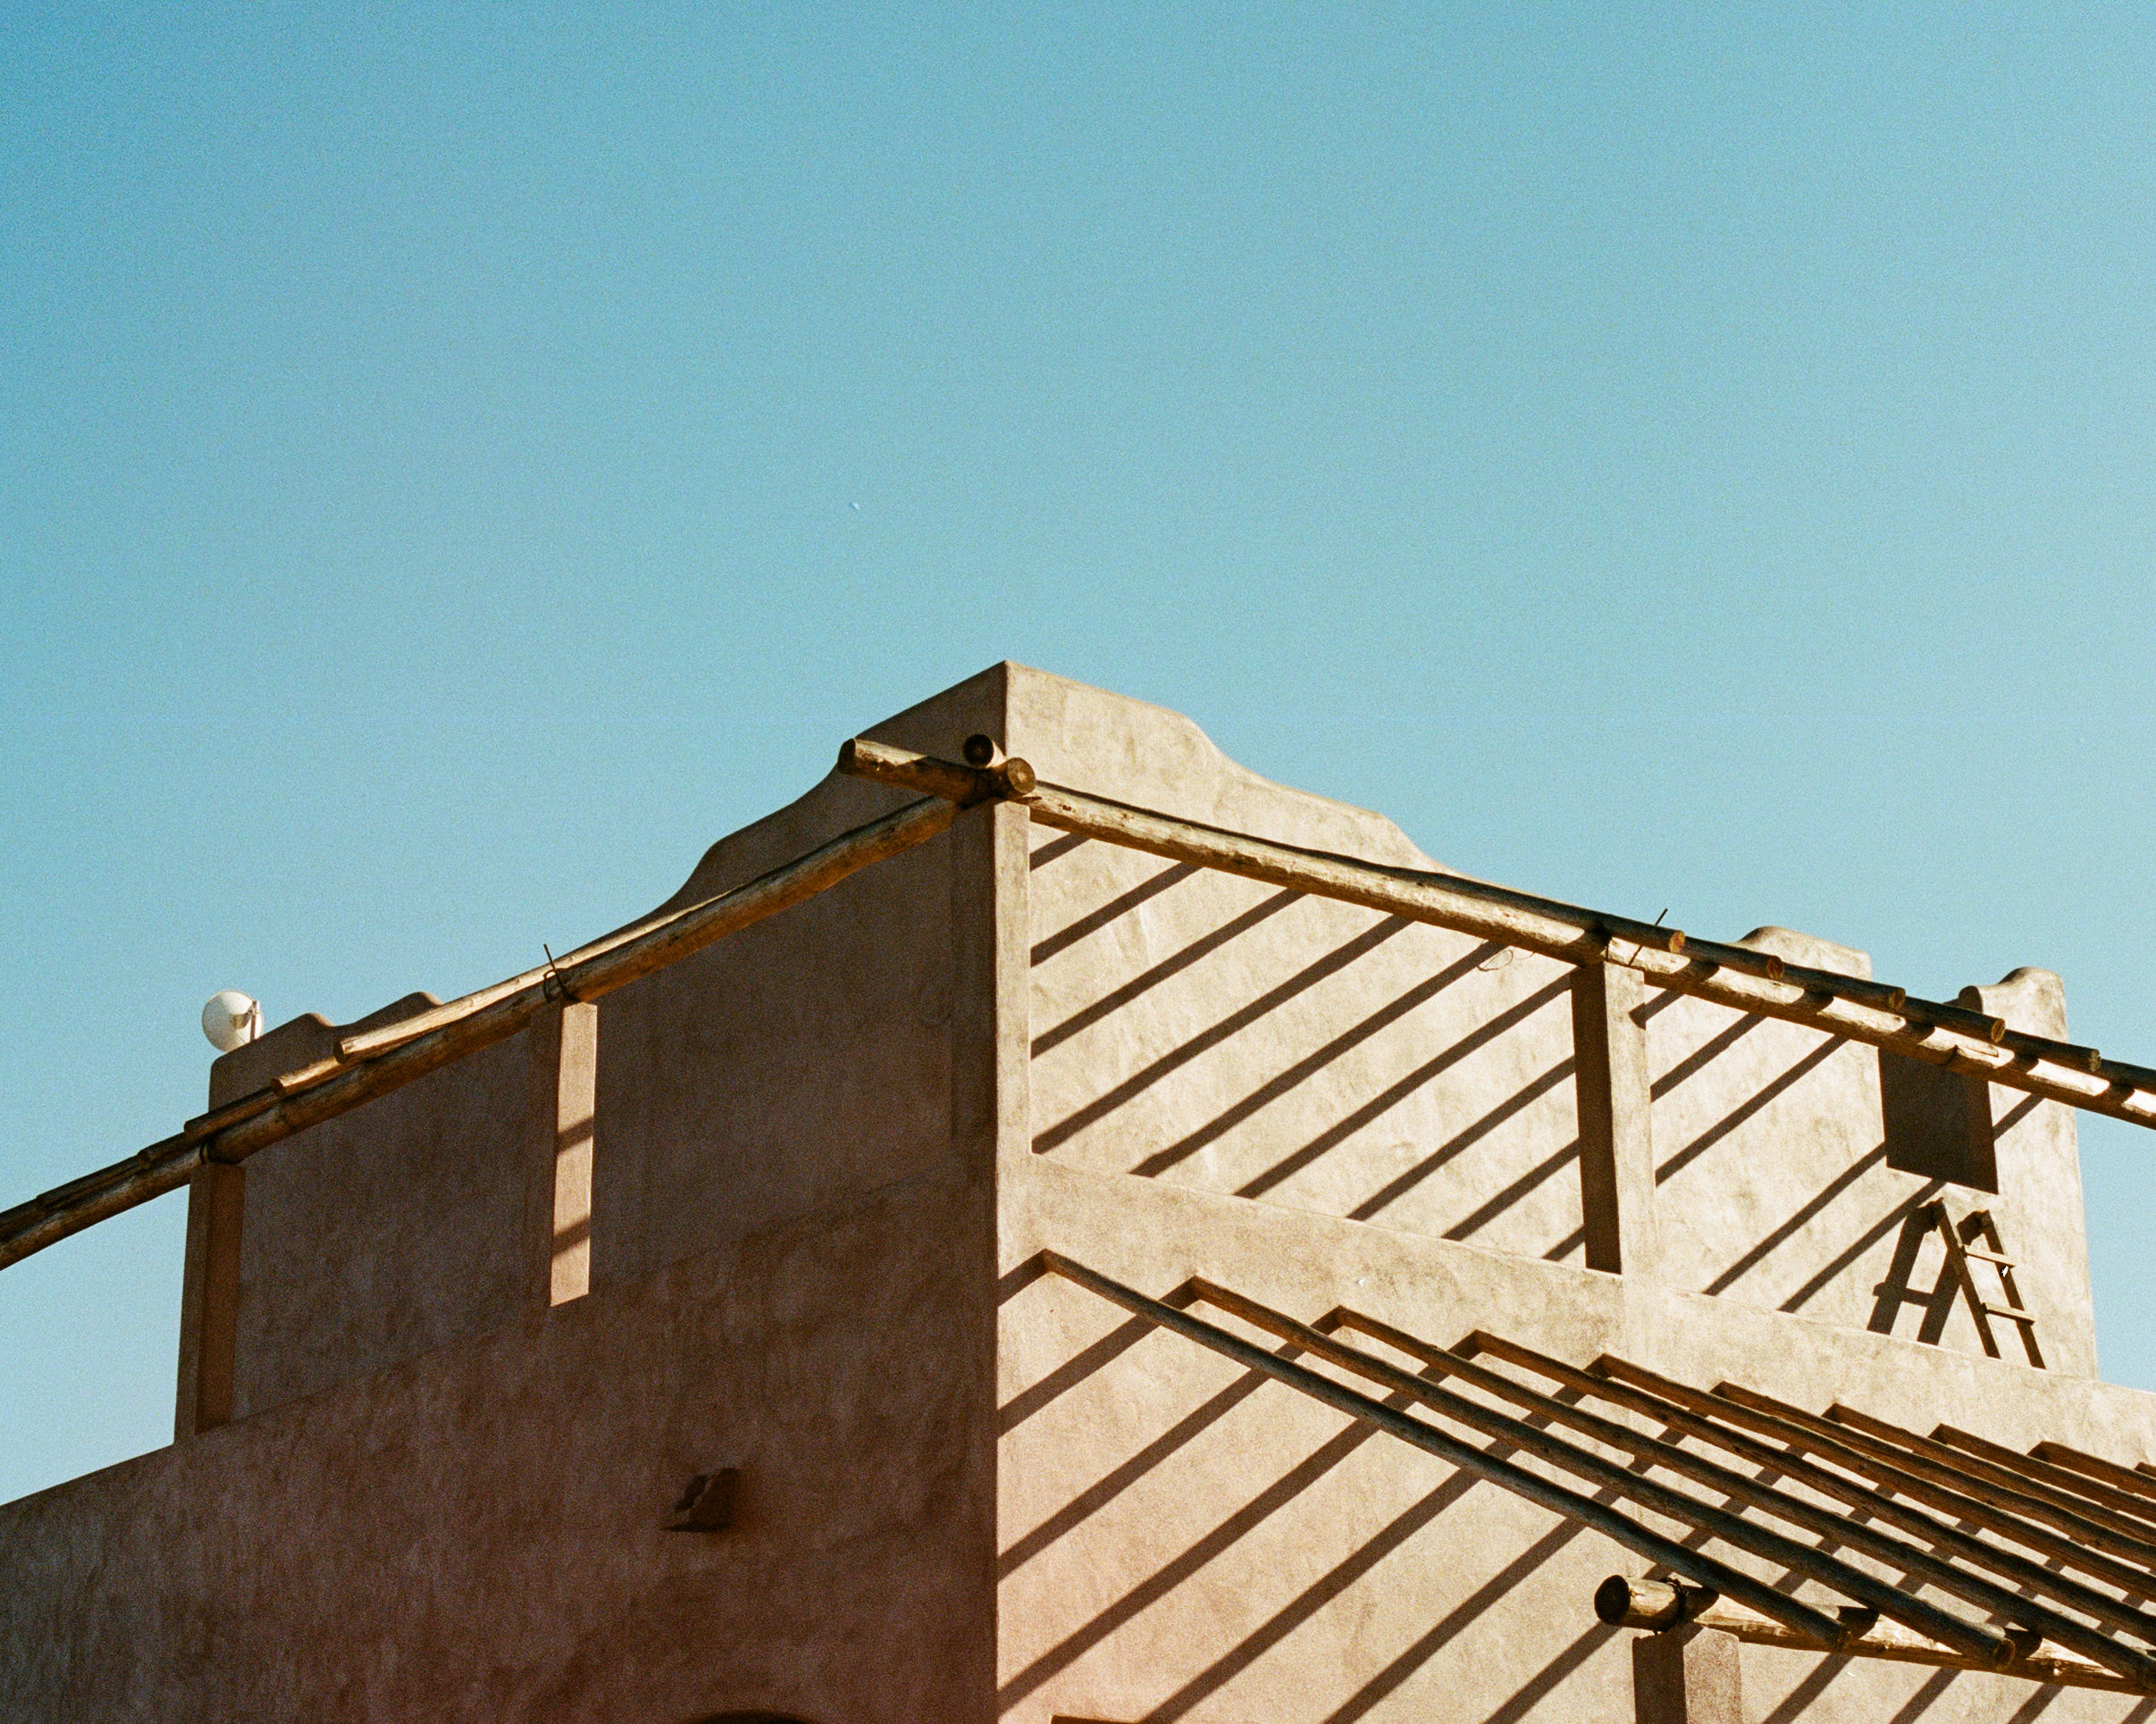 Photograph of adobe house in Baja Mexico by photographer Jon Moore, Creative Director at The Beans and Rice